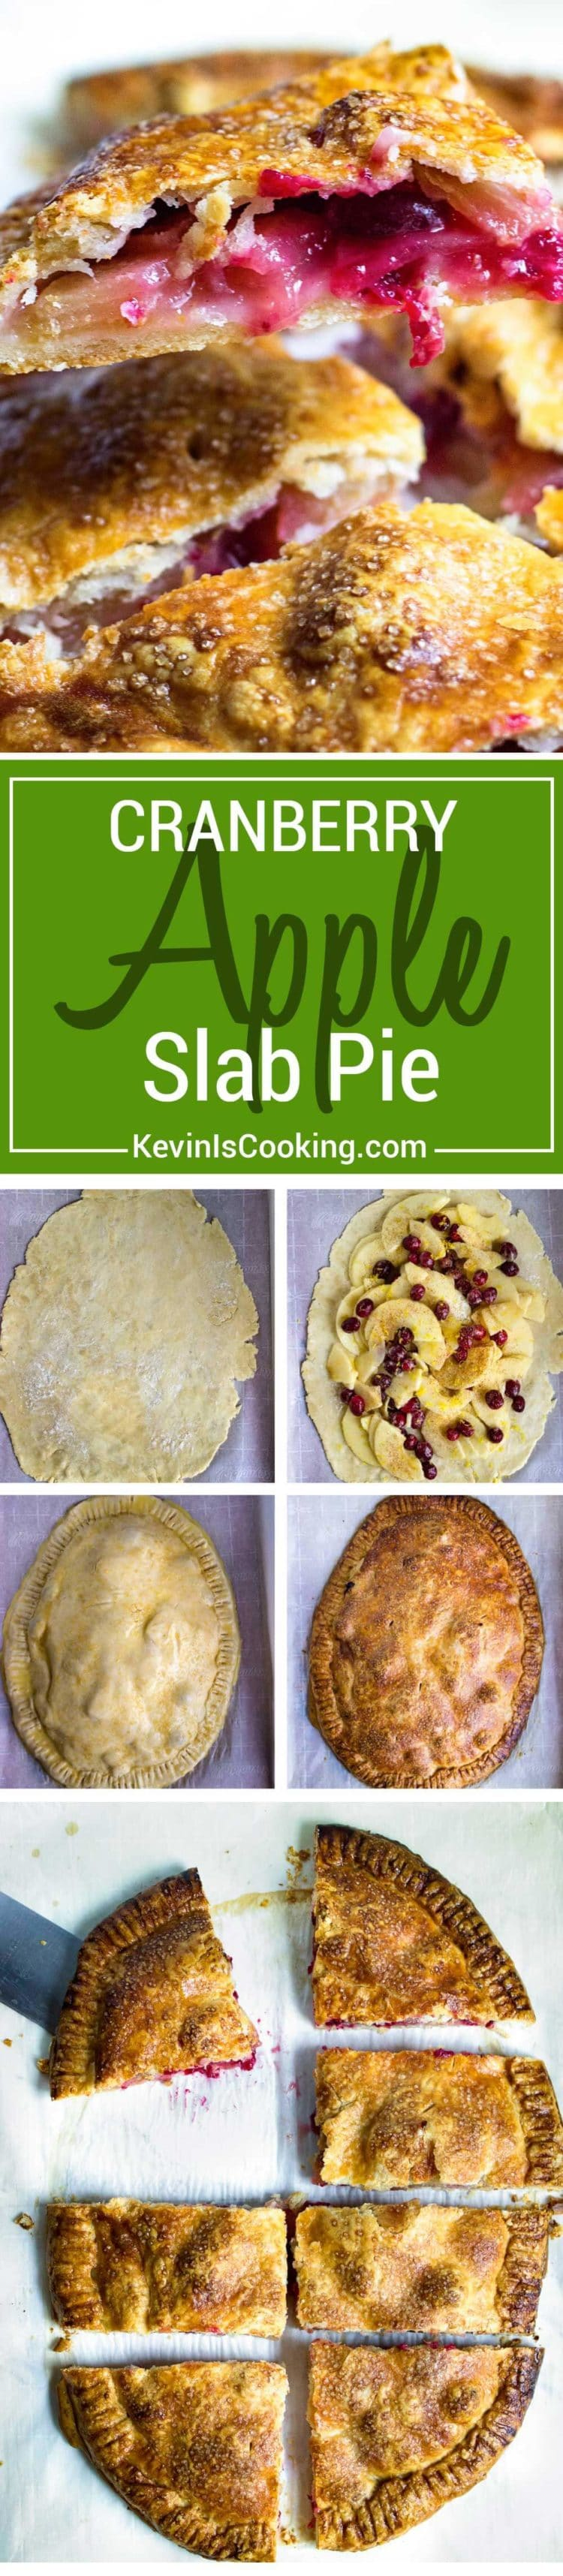 Cranberry Apple Slab Pie - Kevin Is Cooking